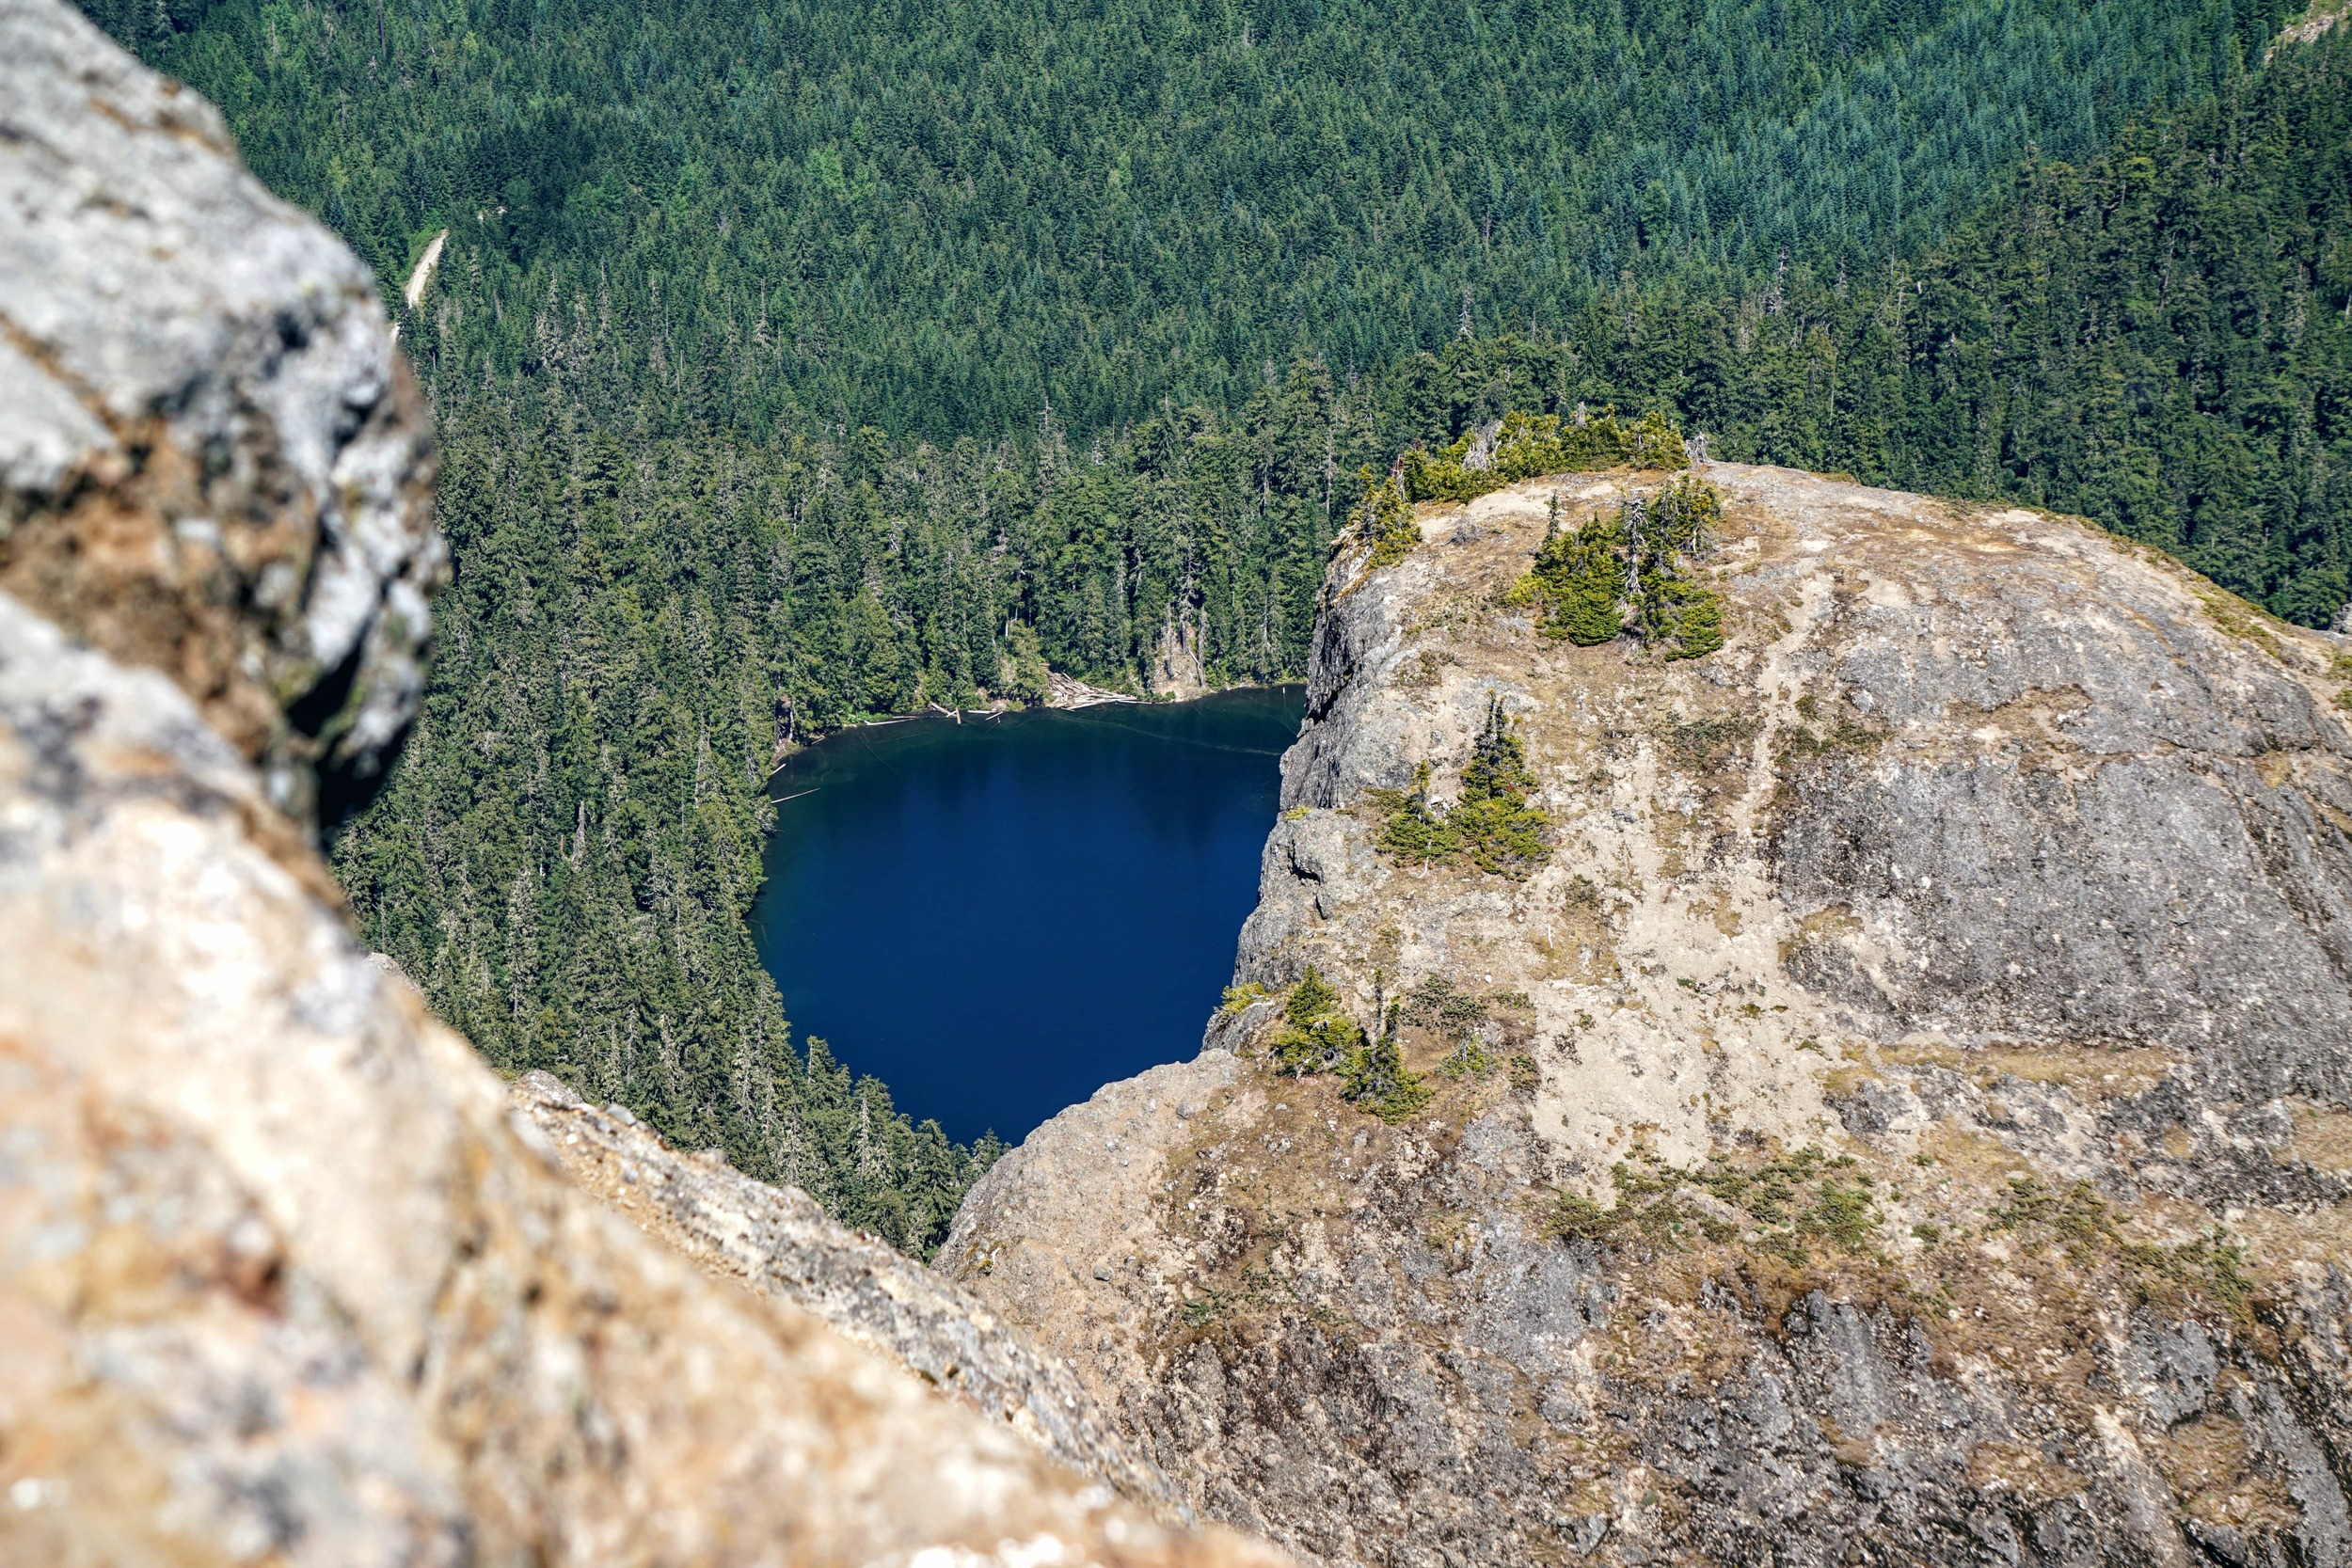 Cora Lake from High Rock